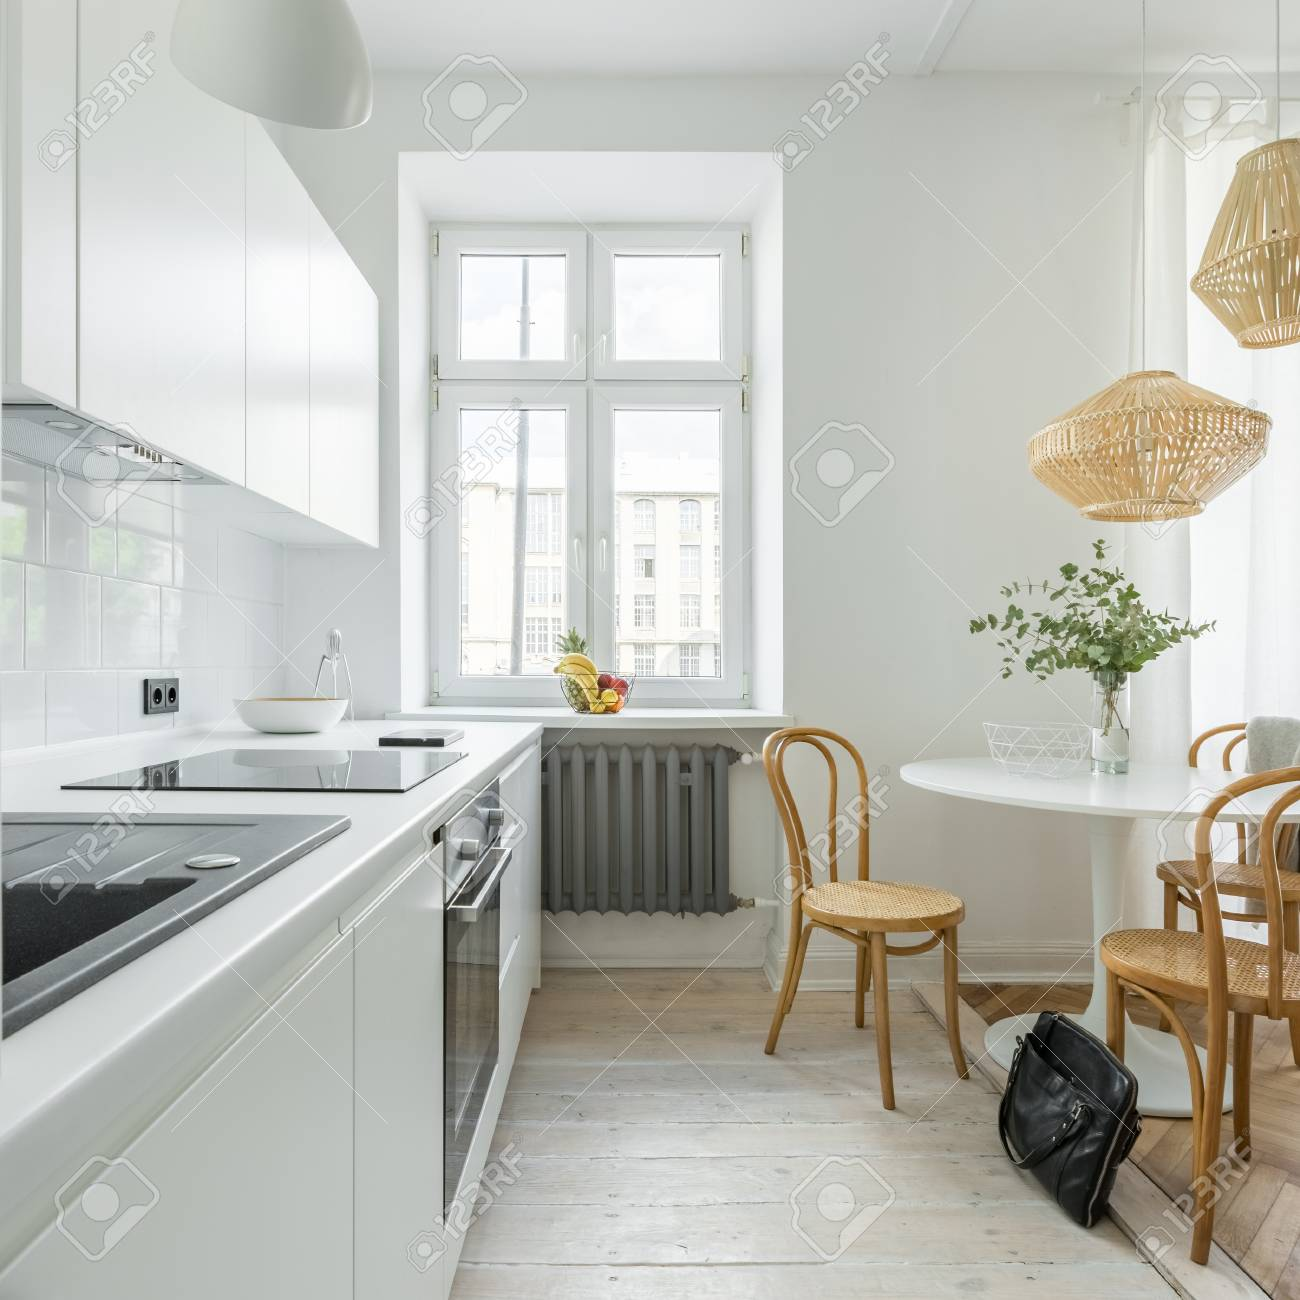 Table And Cane Chairs In Kitchen Decorated With Wooden Lamps Stock Photo Picture And Royalty Free Image Image 99468567